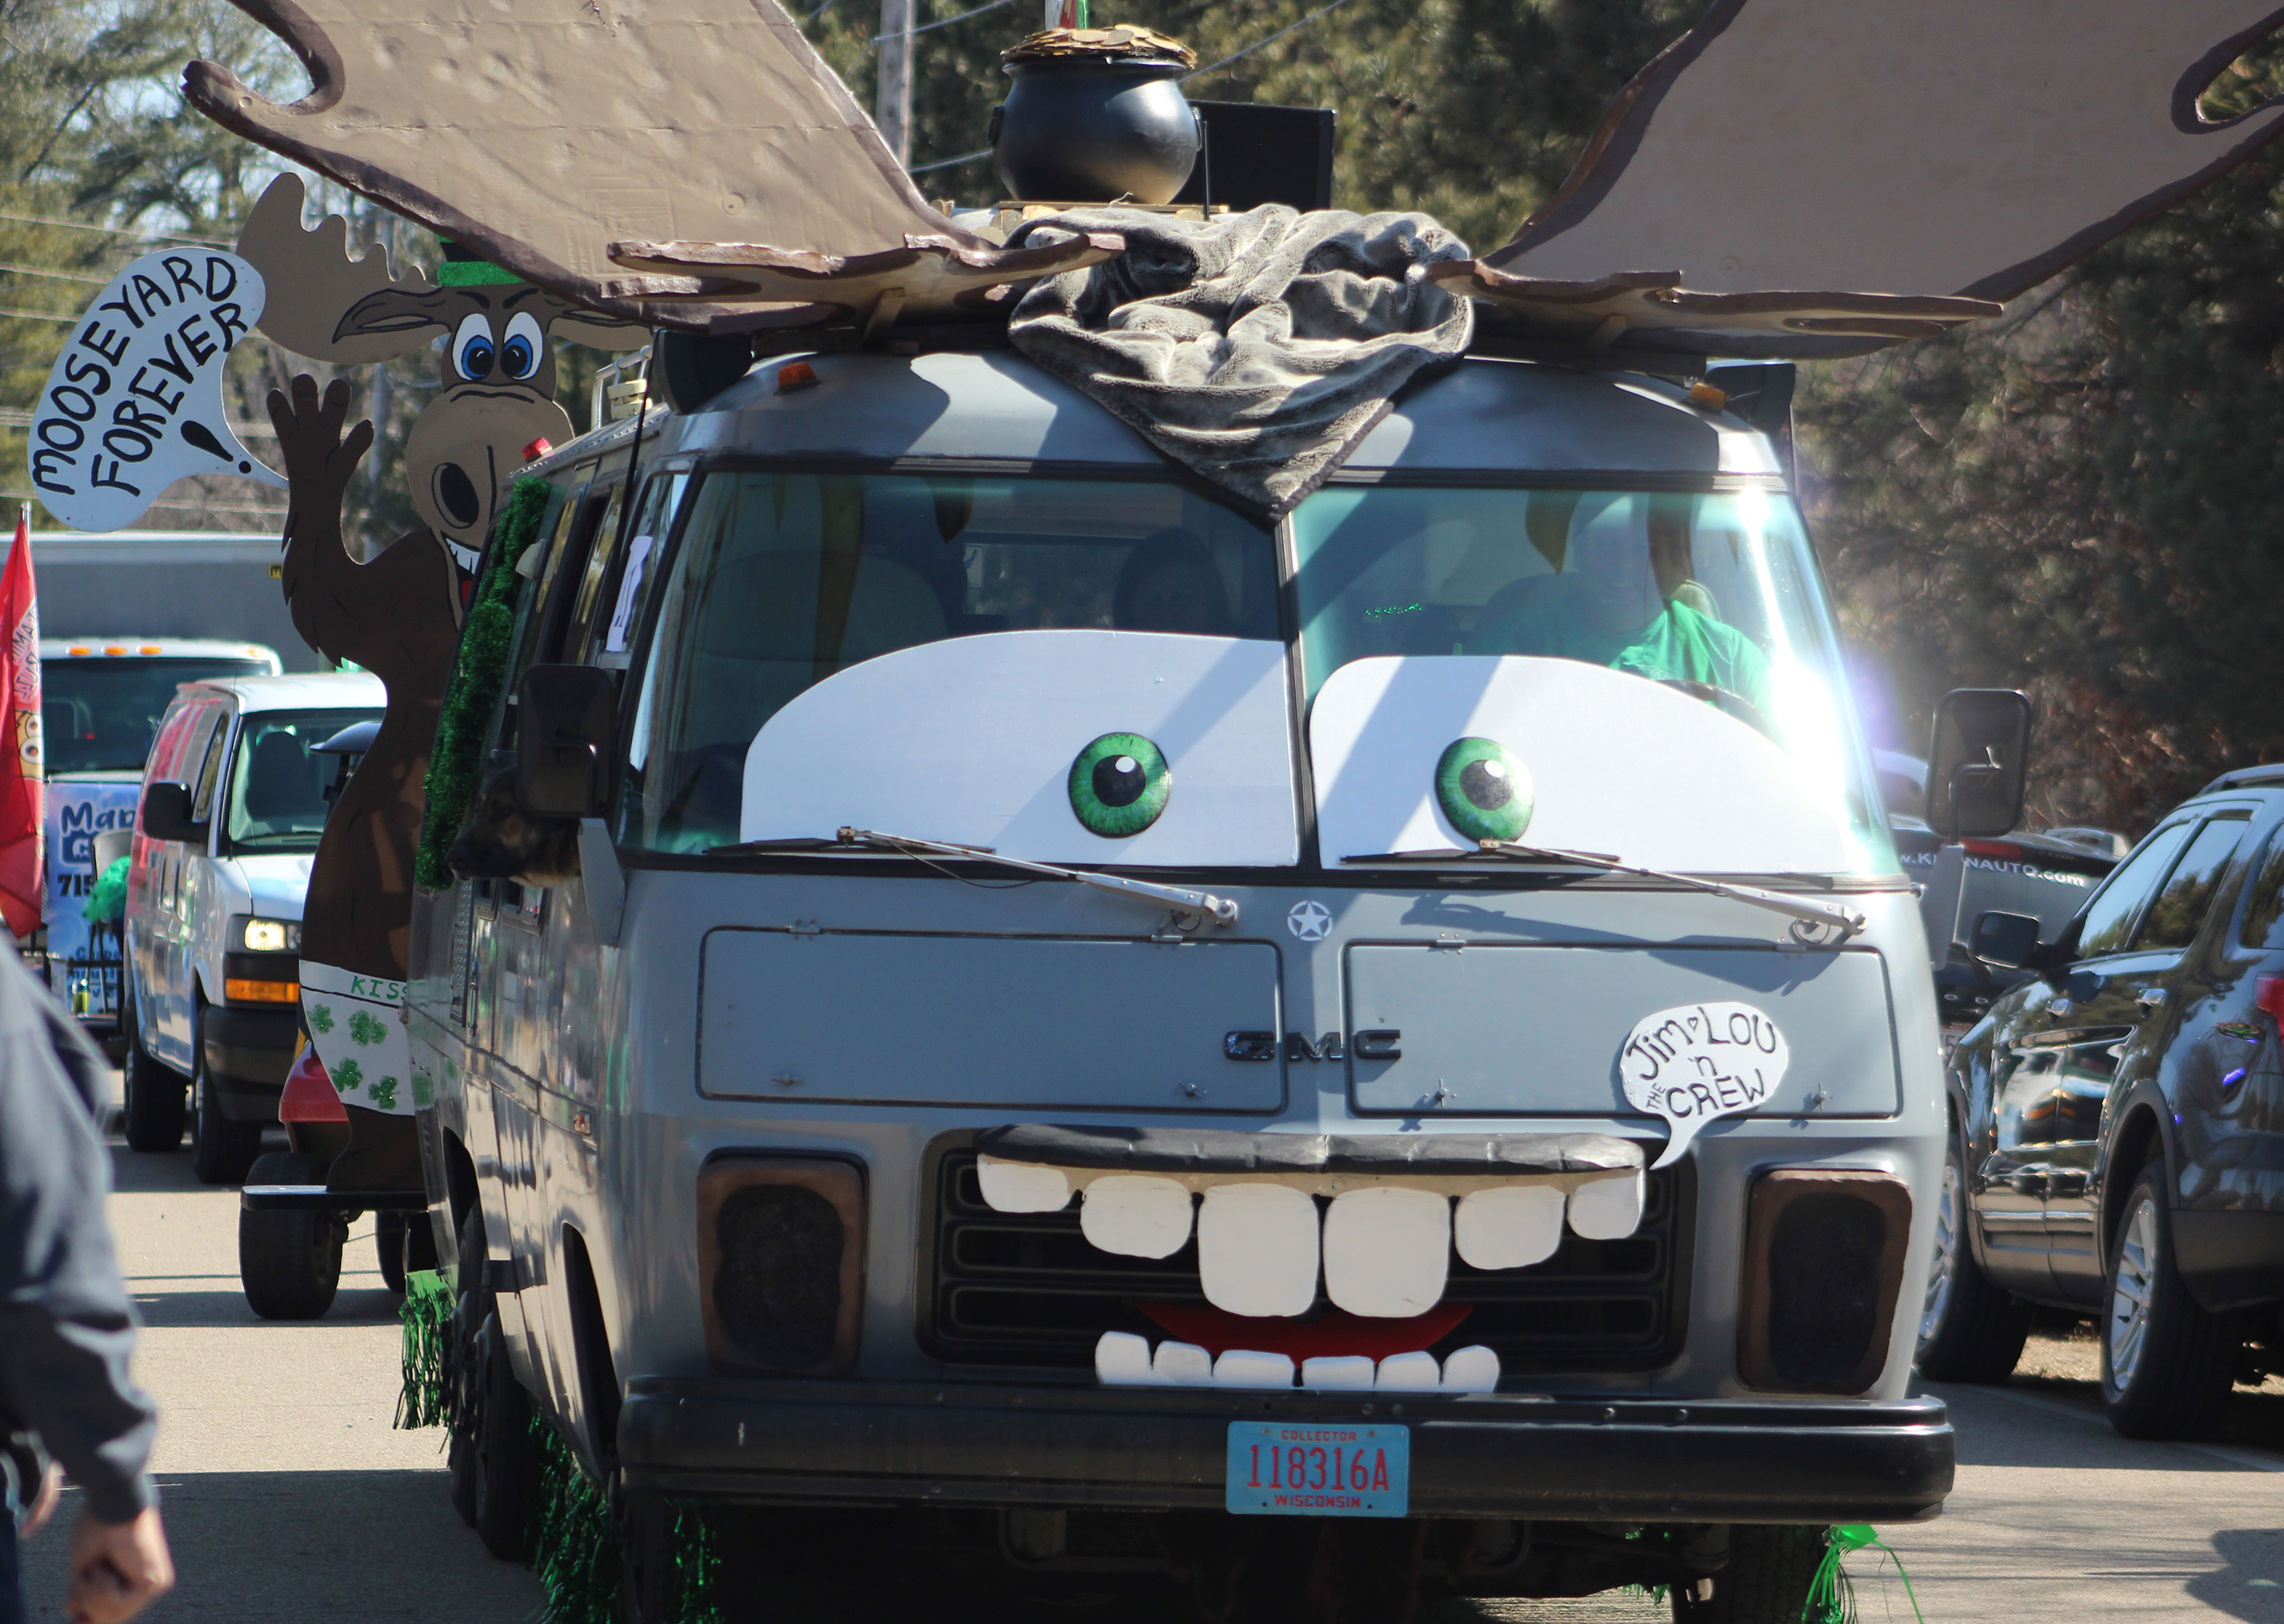 The Mooseyard is a beloved segment of the Town of Wescott. Some parade entries — like this vehicle from Classic's Restaurant and Lounge — minimized the green and focused on the moose part of the event.(Lee Pulaski   NEW Media)